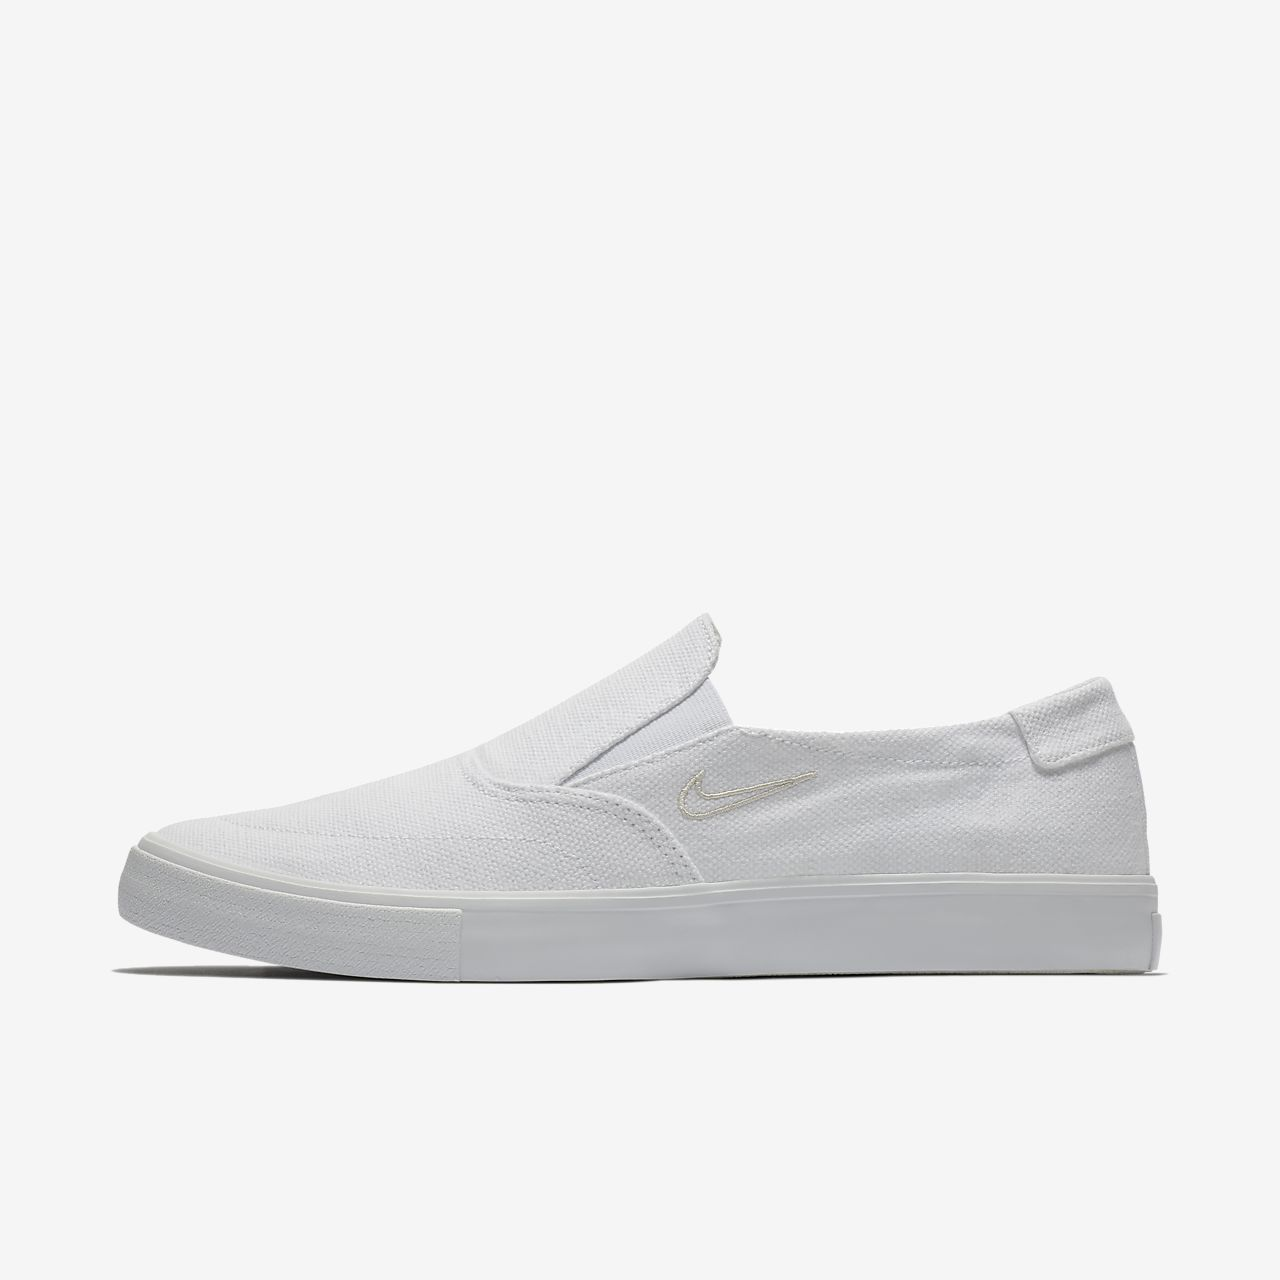 Nike SB Portmore II Solarsoft Slipon Blanc - Chaussures Slips on Homme